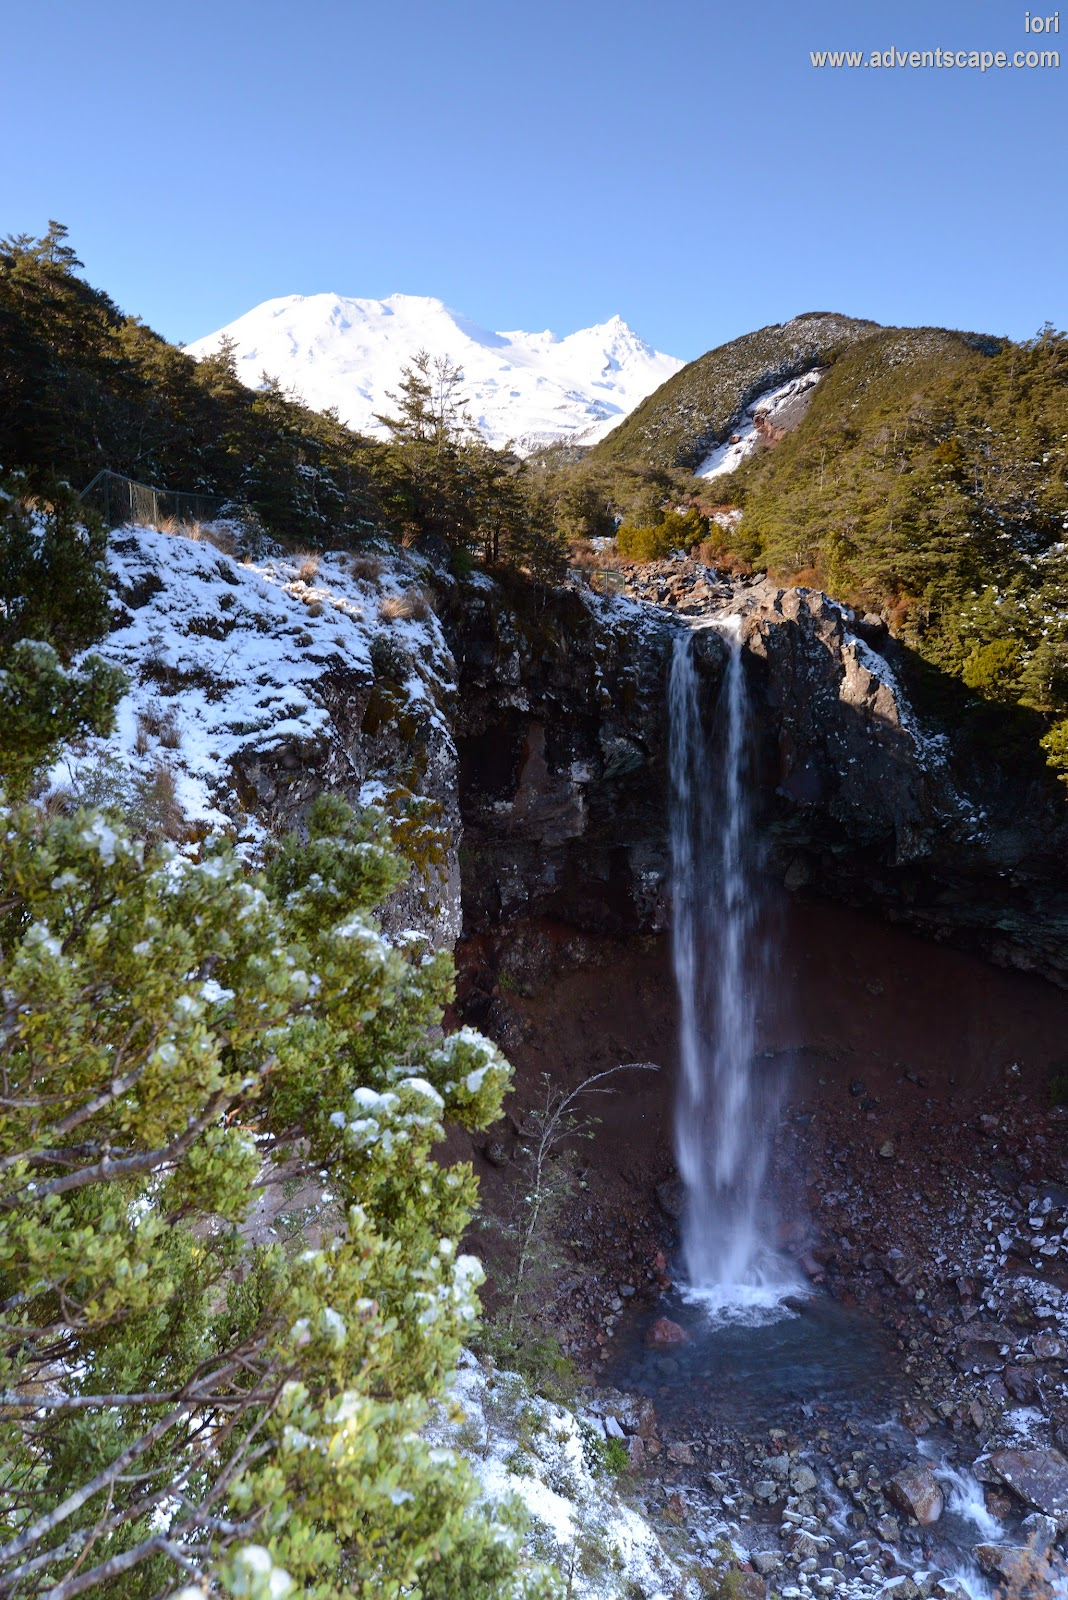 Philip Avellana, iori, adventscape, Mangawhero Falls, Mt Ruapehu, NZ, New Zealand, waterfalls, nature photos, LOTR, Lord of the Rings, filming location